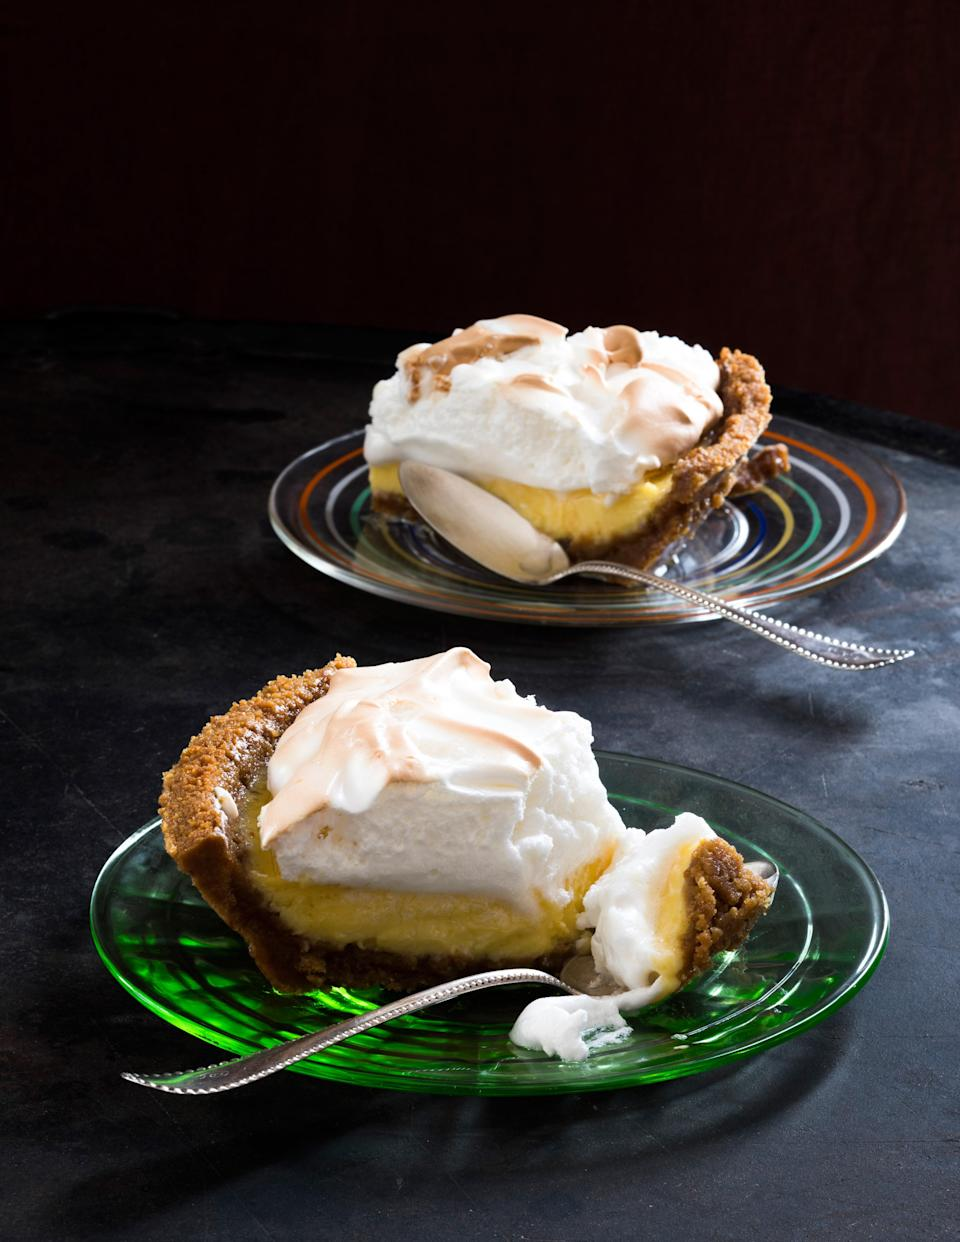 """It looks fancy, but this pie is actually quite easy to make. The graham cracker crust gets filled with a simple mixture of sweetened condensed milk and lemon juice, and it gets topped with a golden-brown crown of meringue. <a href=""""https://www.epicurious.com/recipes/food/views/icebox-lemon-pie-with-meringue?mbid=synd_yahoo_rss"""" rel=""""nofollow noopener"""" target=""""_blank"""" data-ylk=""""slk:See recipe."""" class=""""link rapid-noclick-resp"""">See recipe.</a>"""